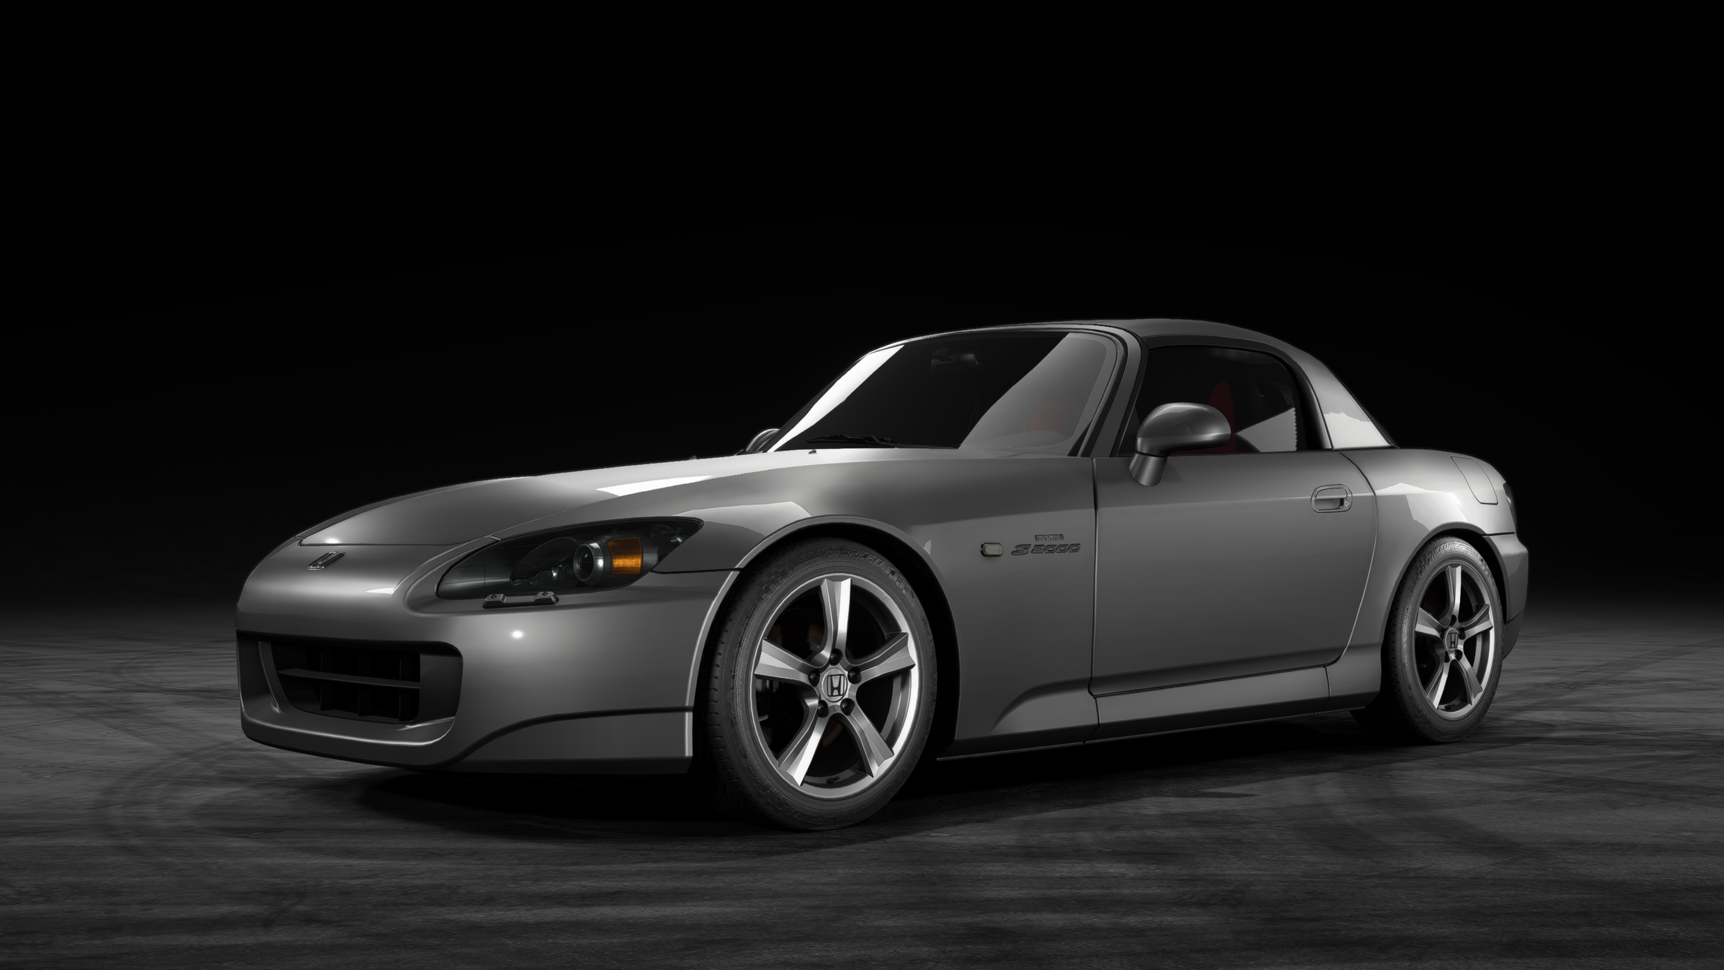 Honda s2000 ap2 need for speed wiki fandom powered by wikia lv126 publicscrutiny Image collections